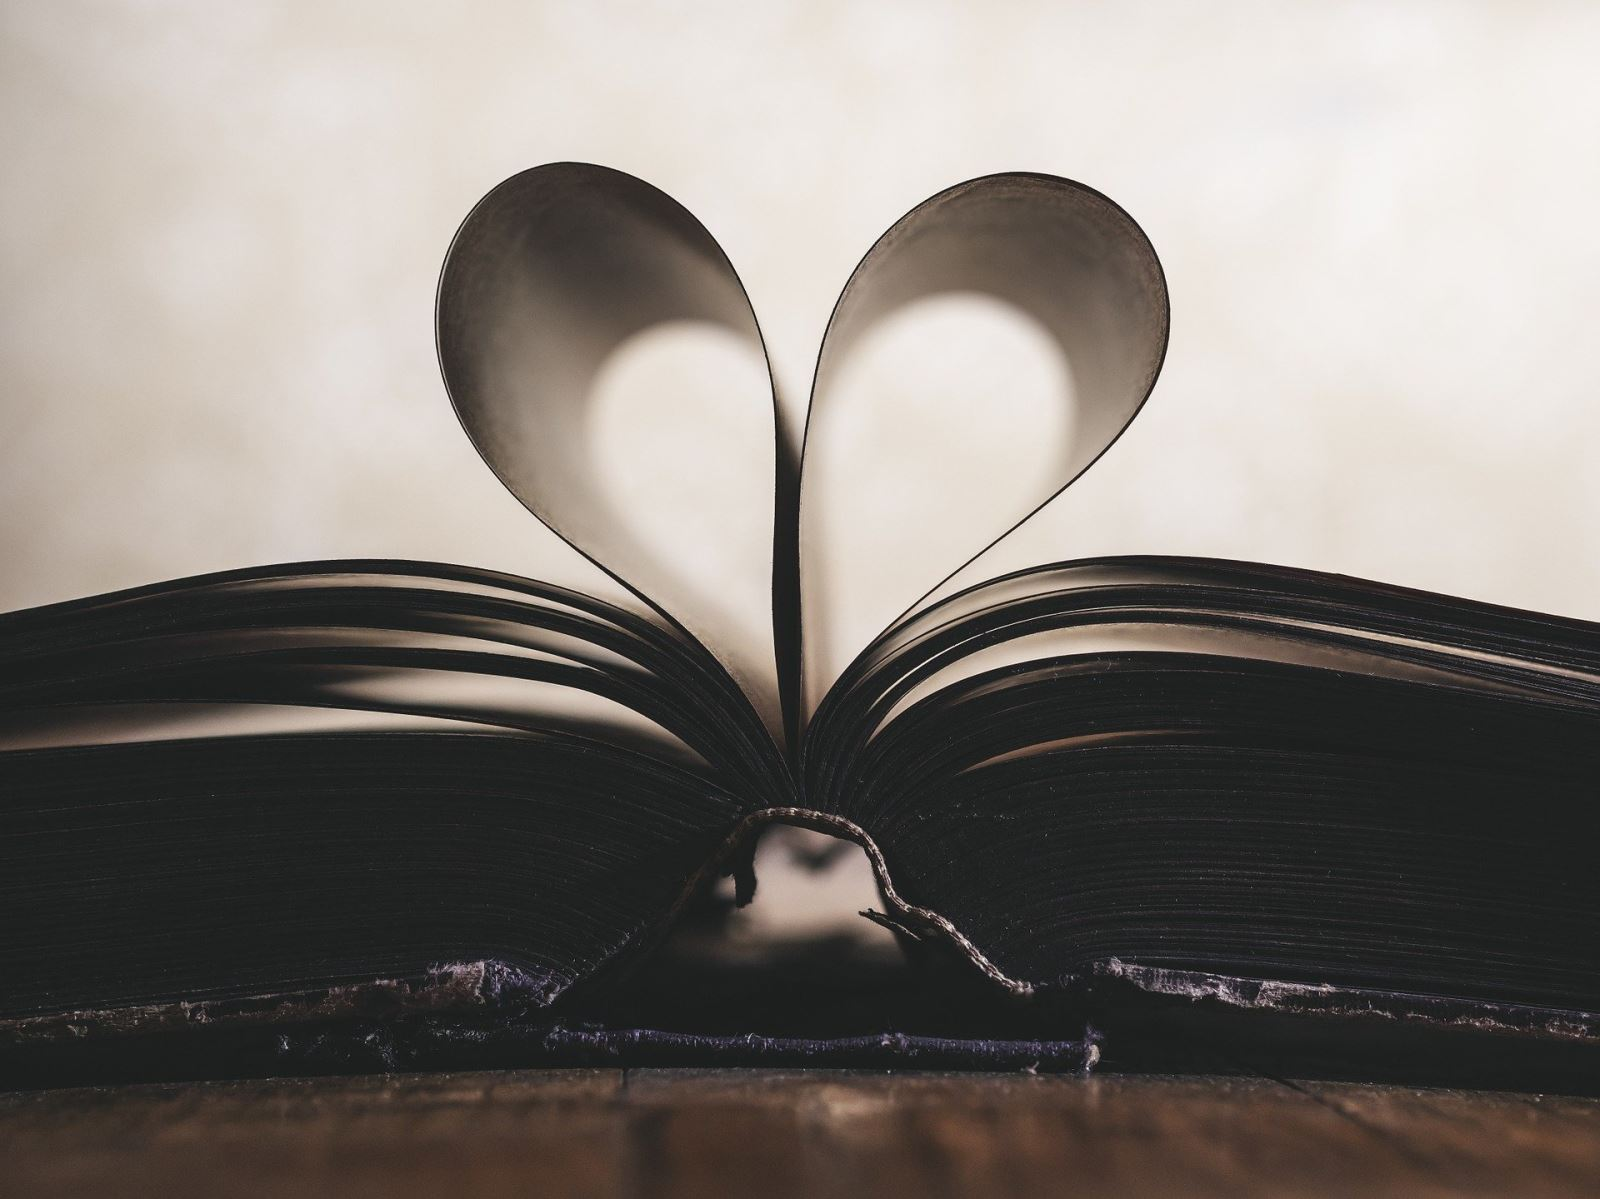 Photograph of an open book whose pages are bent upward to form a heart shape.